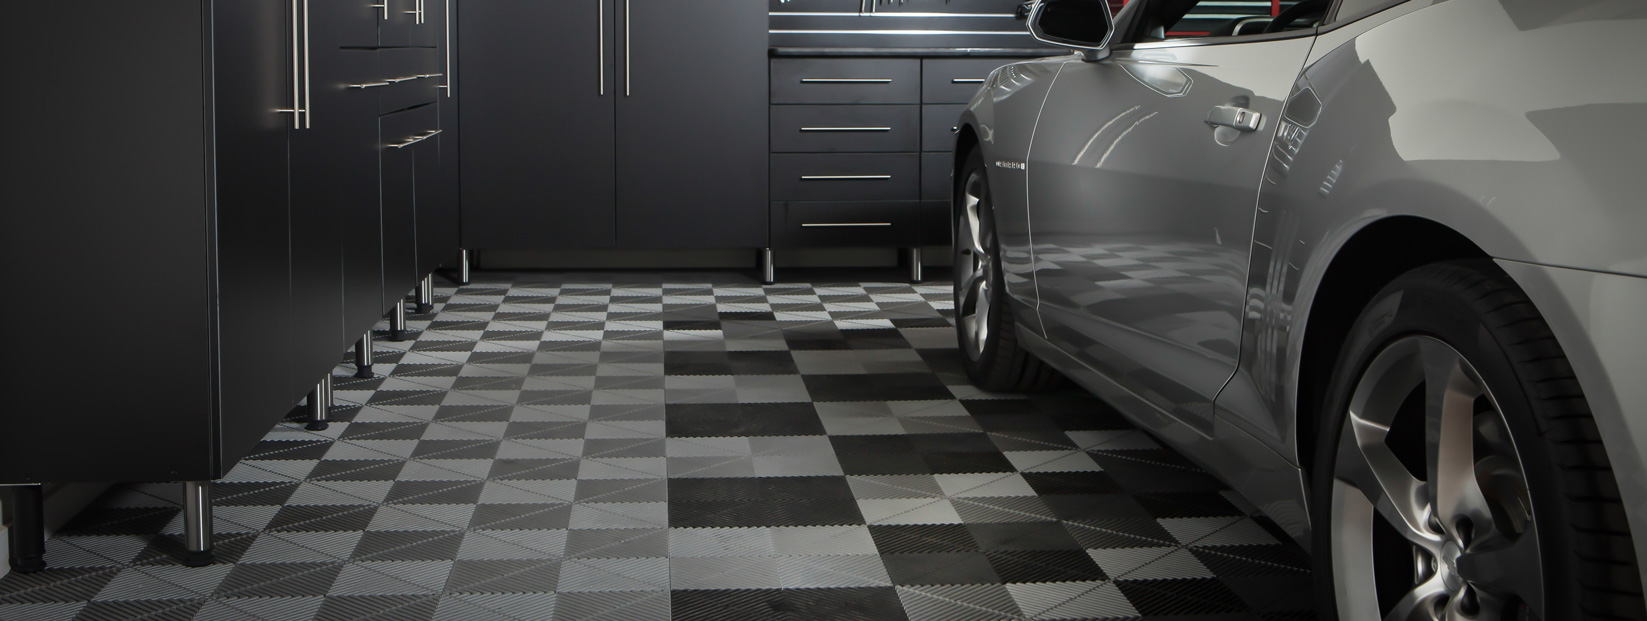 Garage Floor Tiles Bergen County